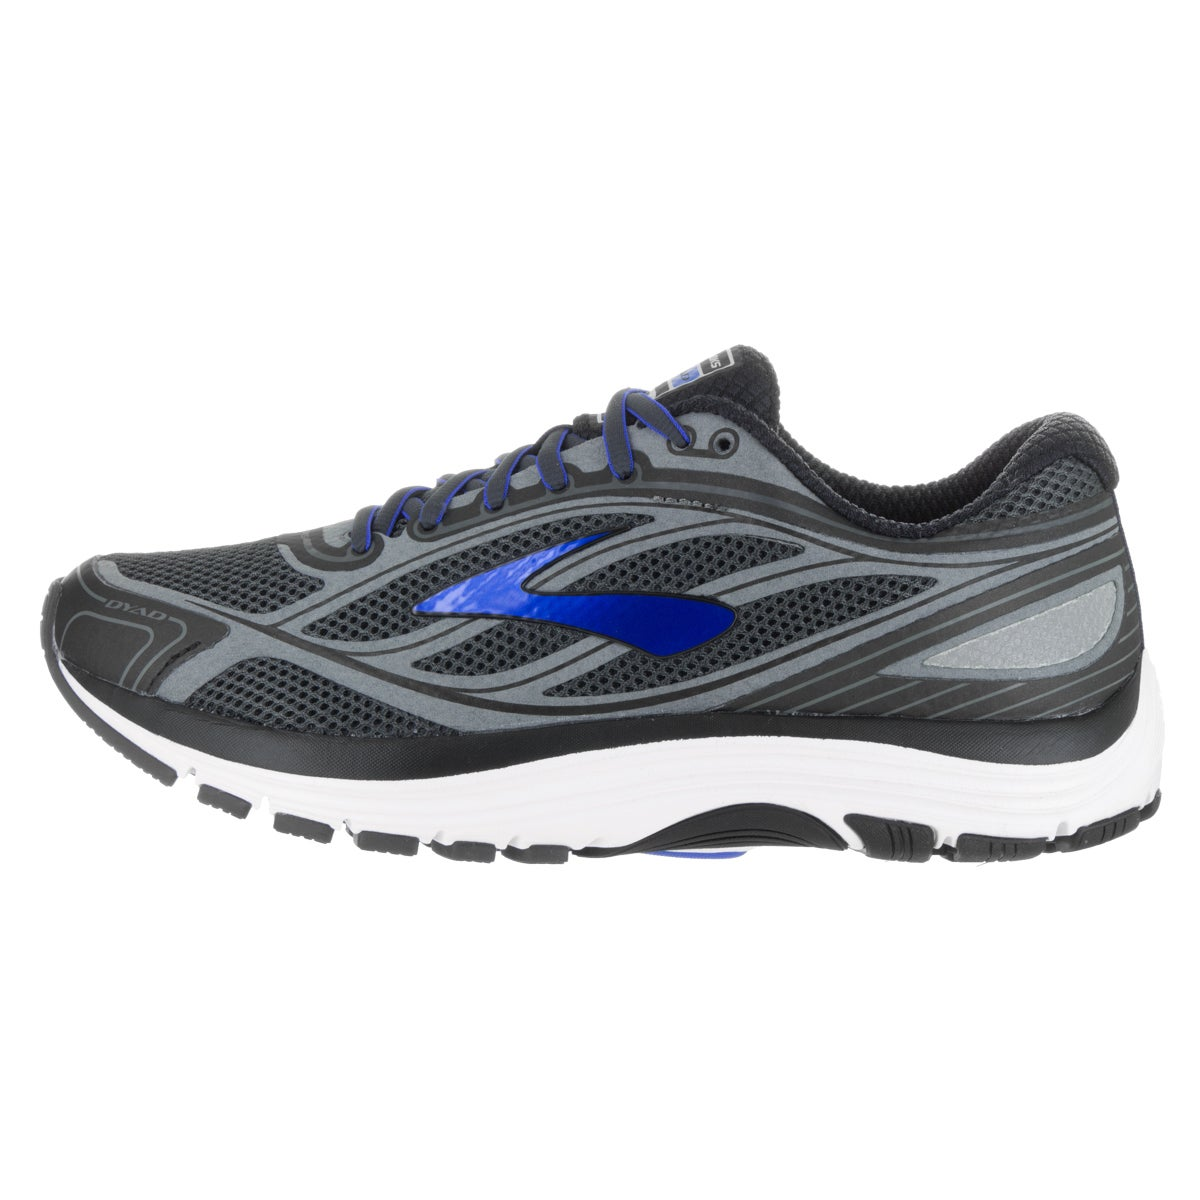 9915534d092 Shop Brooks Men s Dyad 9 Grey Running Shoes - Free Shipping Today -  Overstock.com - 13477927